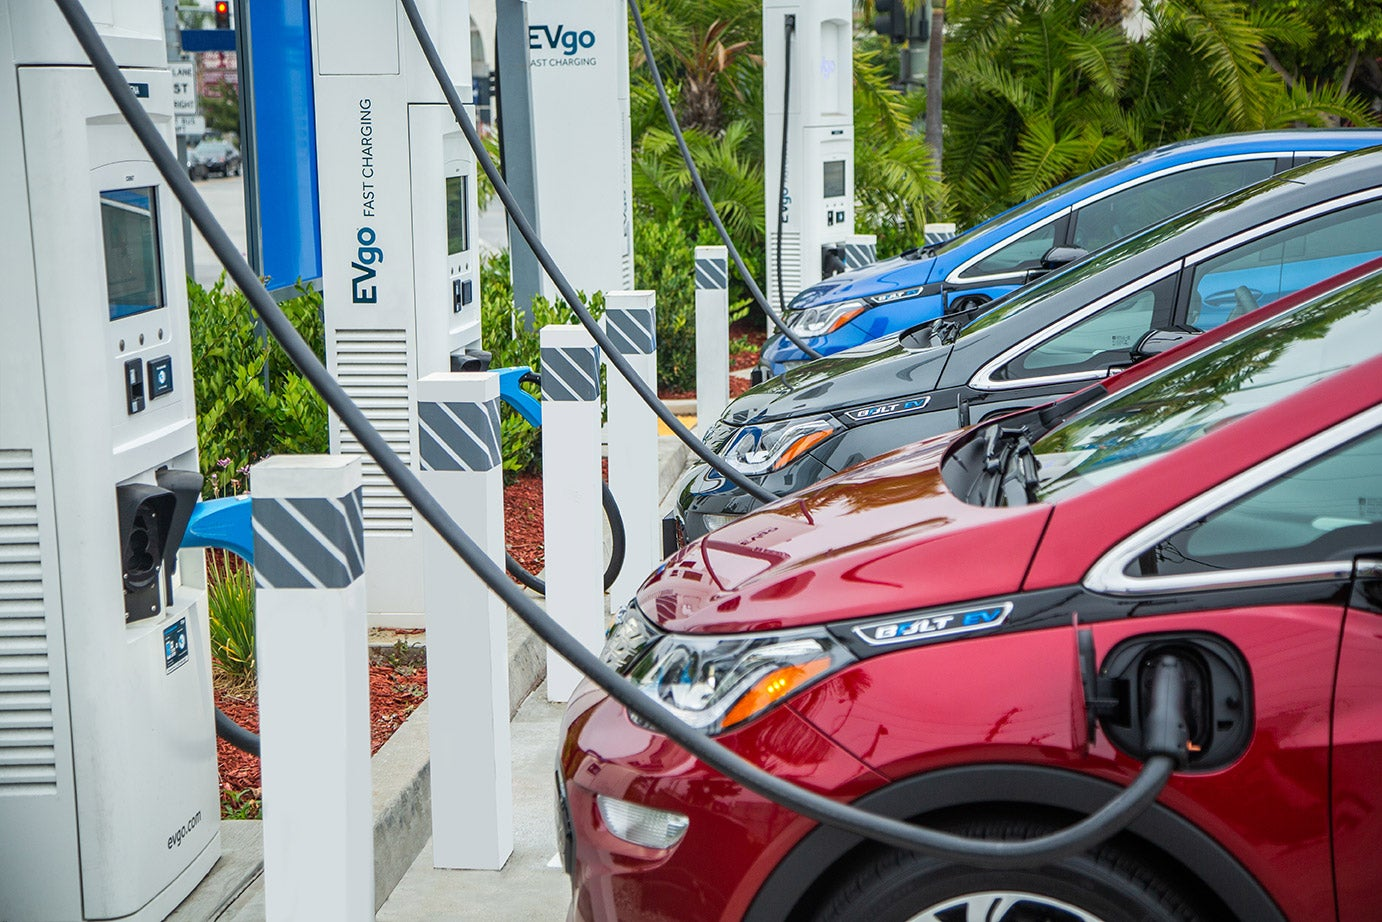 electric vehicles plugged in